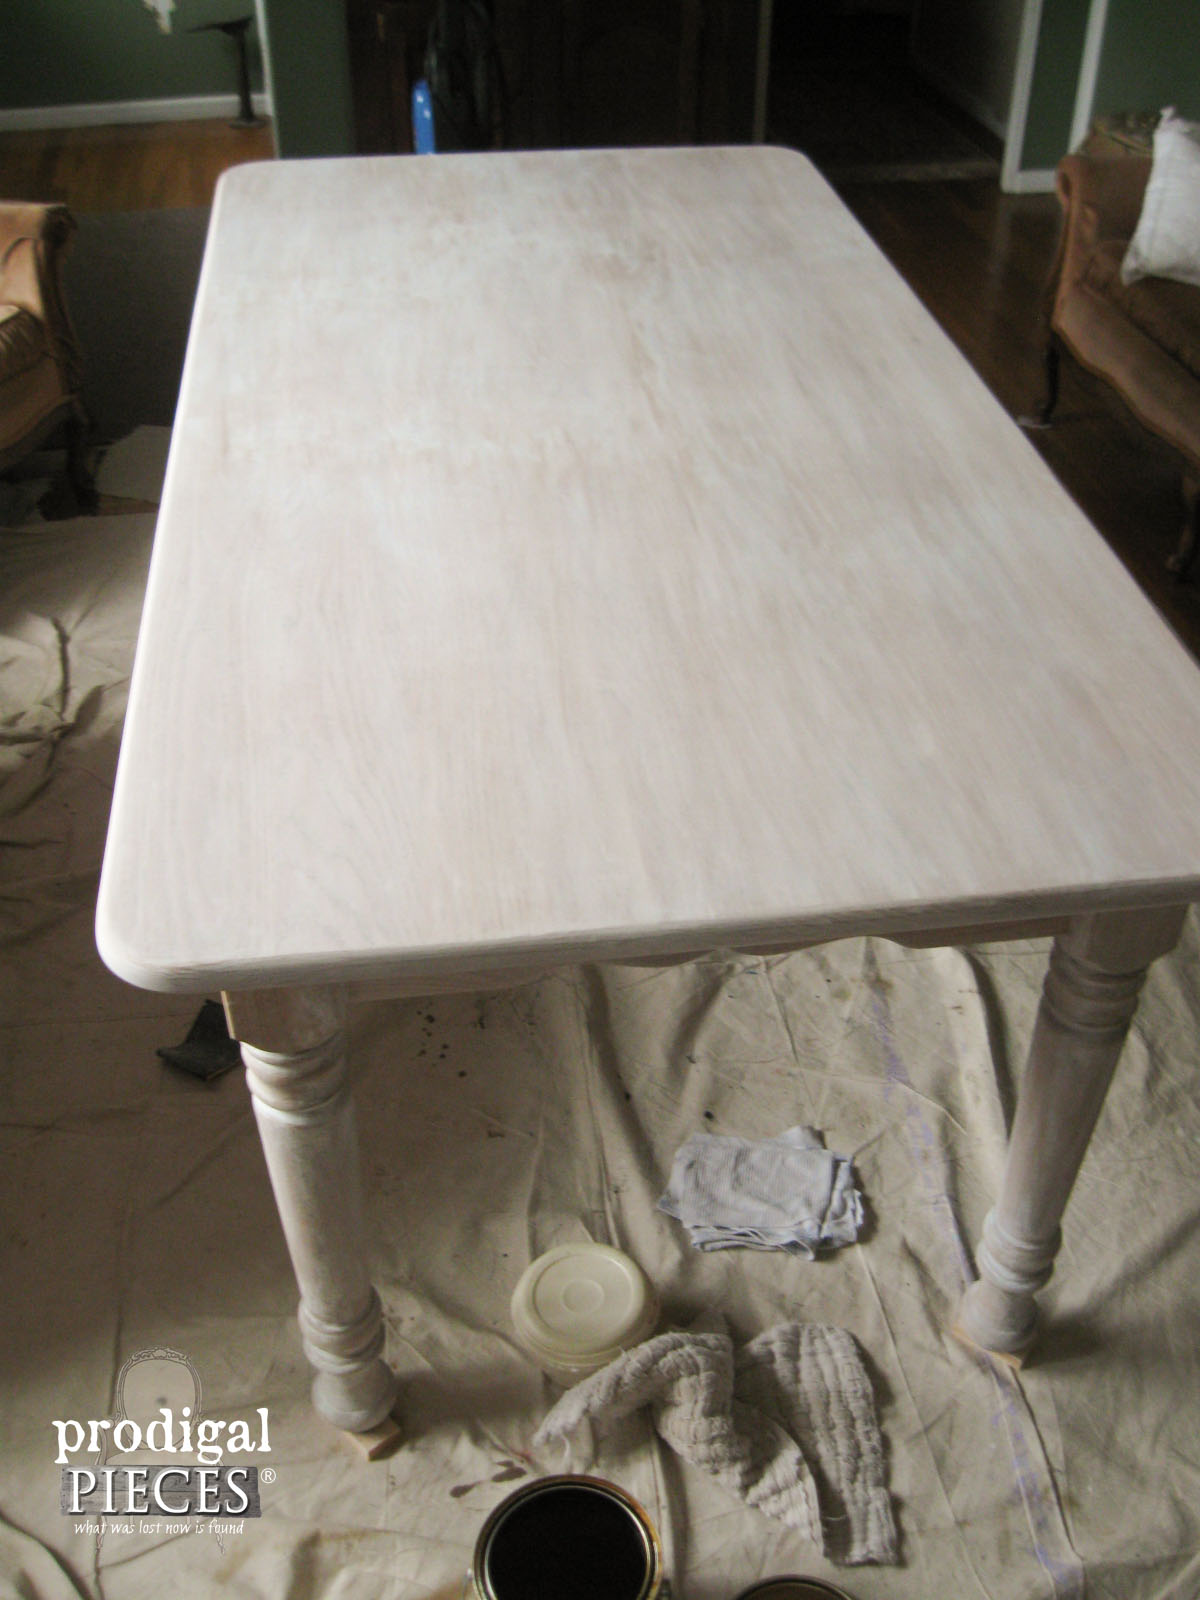 whitewash wood furniture. Whitewashed Farmhouse Table Before Waterlox Topcoat | Prodigal Pieces Www.prodigalpieces.com Whitewash Wood Furniture